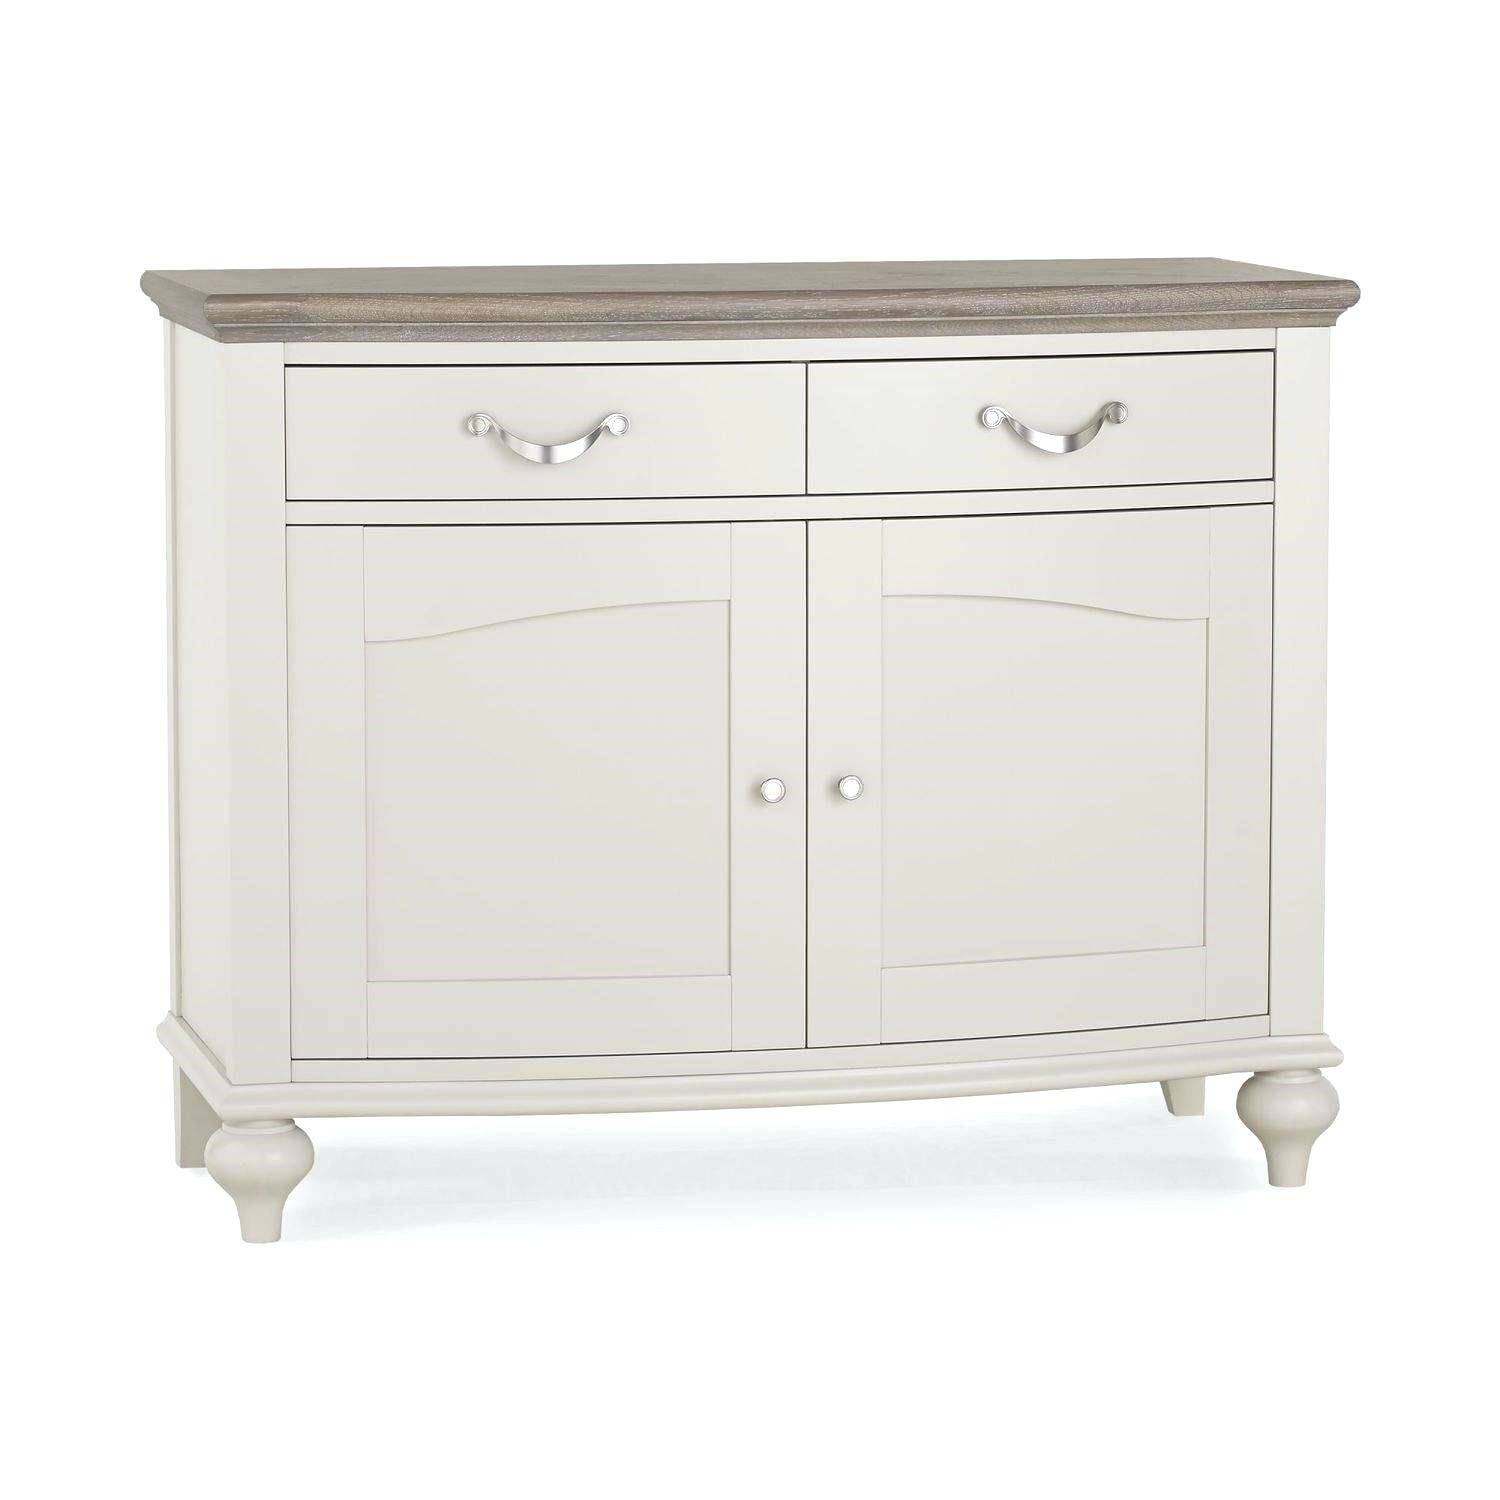 Narrow Sideboard Designs Grey Washed Oak Amp Soft Grey Narrow Pertaining To Small Narrow Sideboards (View 7 of 15)